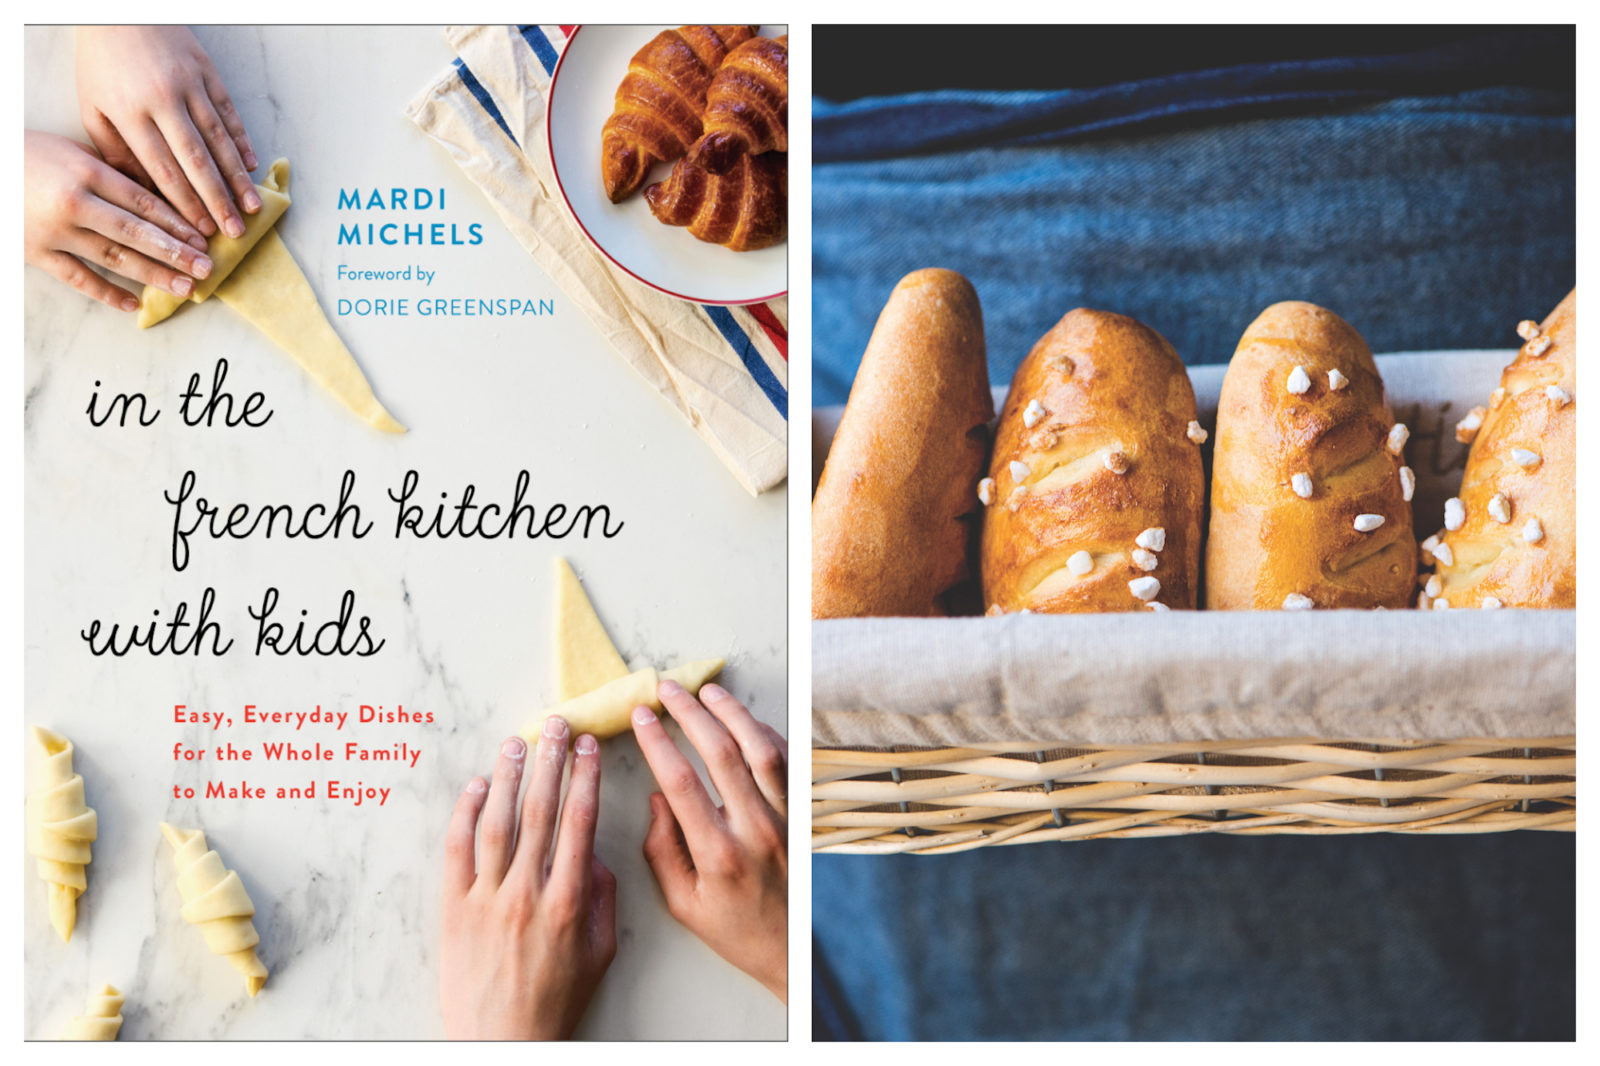 Get into French cooking with Mardi Michels' 'In the French Kitchen with Kids' book (left). Soft Pain au lait from Mardi Michels' French cookbook (right).